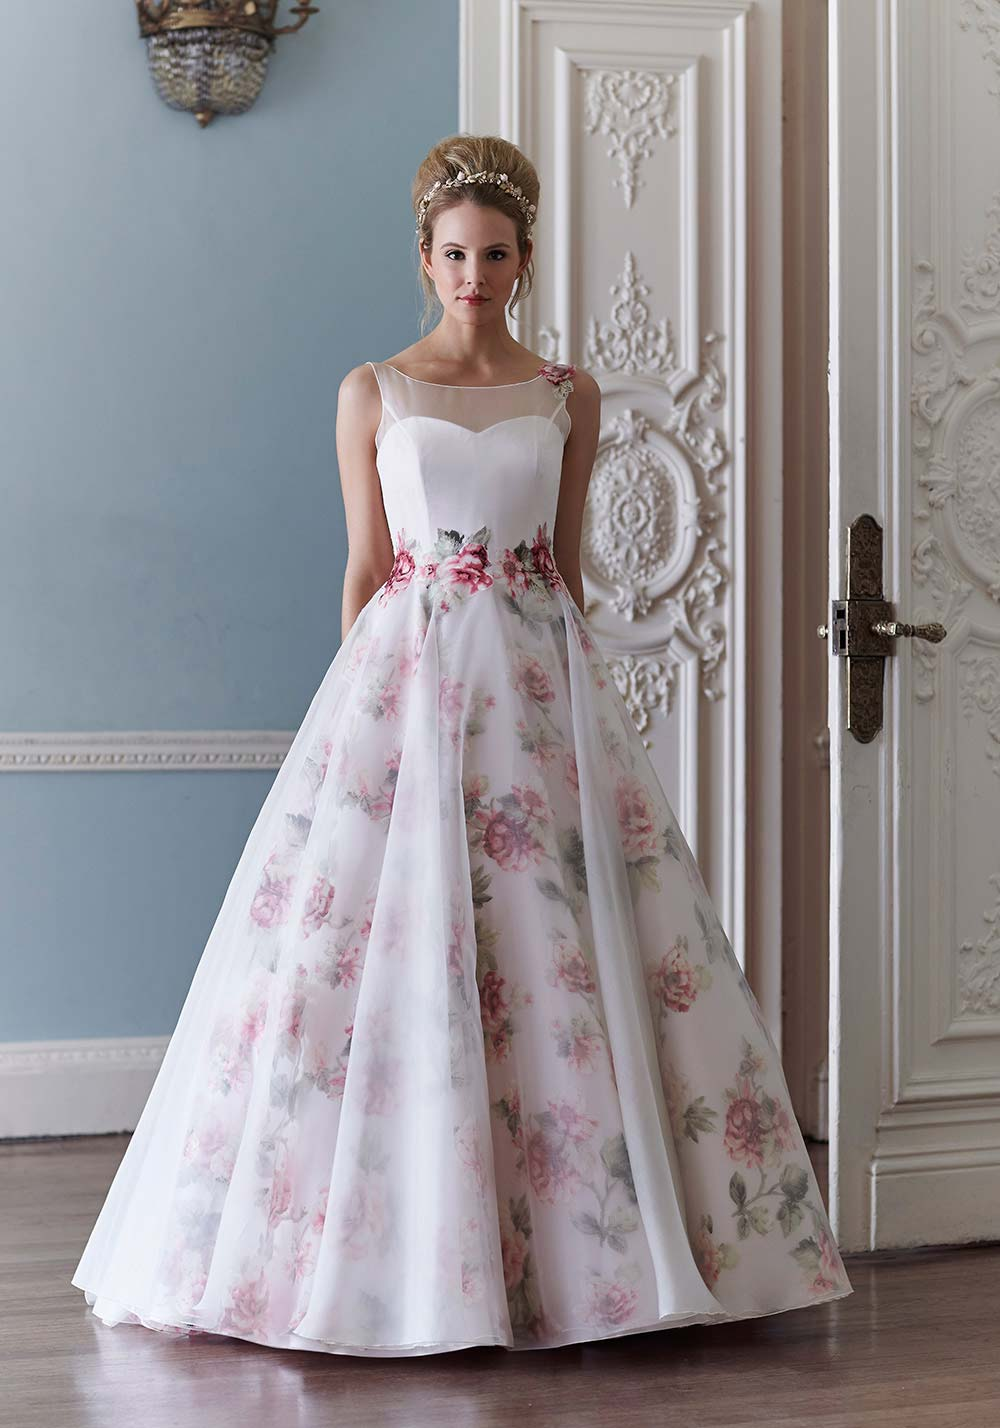 floral-wedding-dresses-sassi-holford-3.jpg